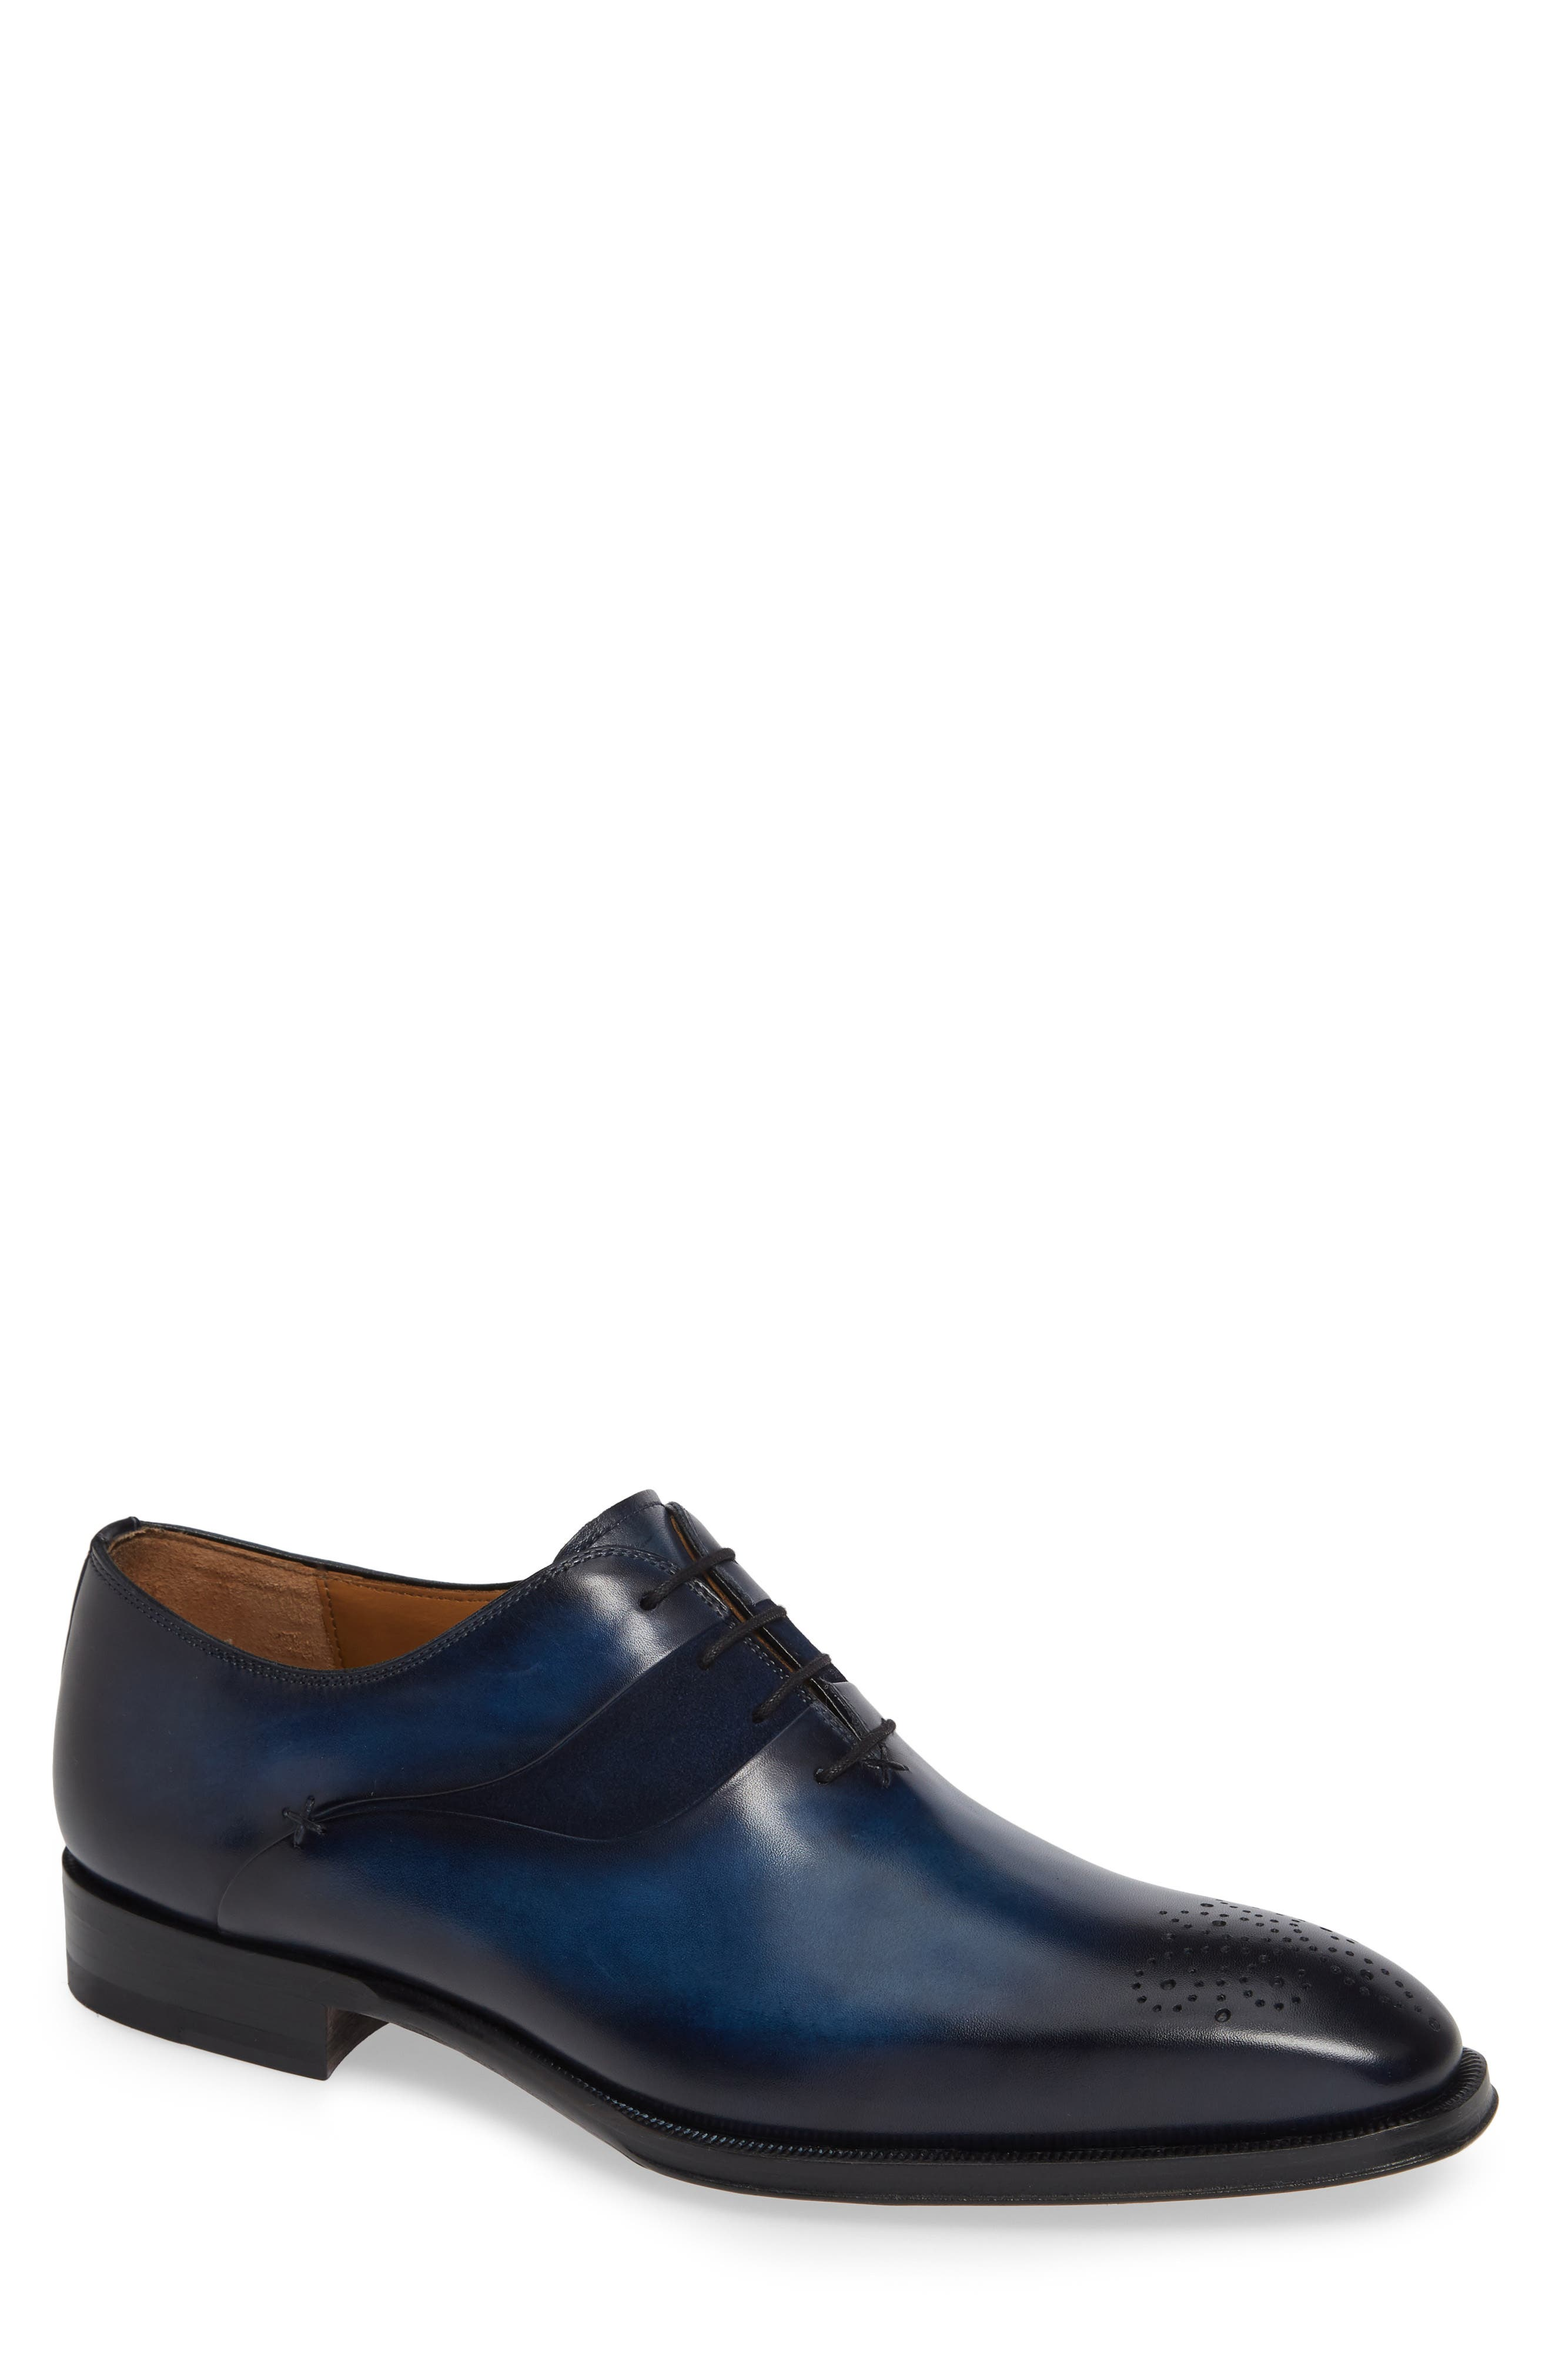 Hector Plain Toe Oxford,                             Main thumbnail 1, color,                             NAVY LEATHER